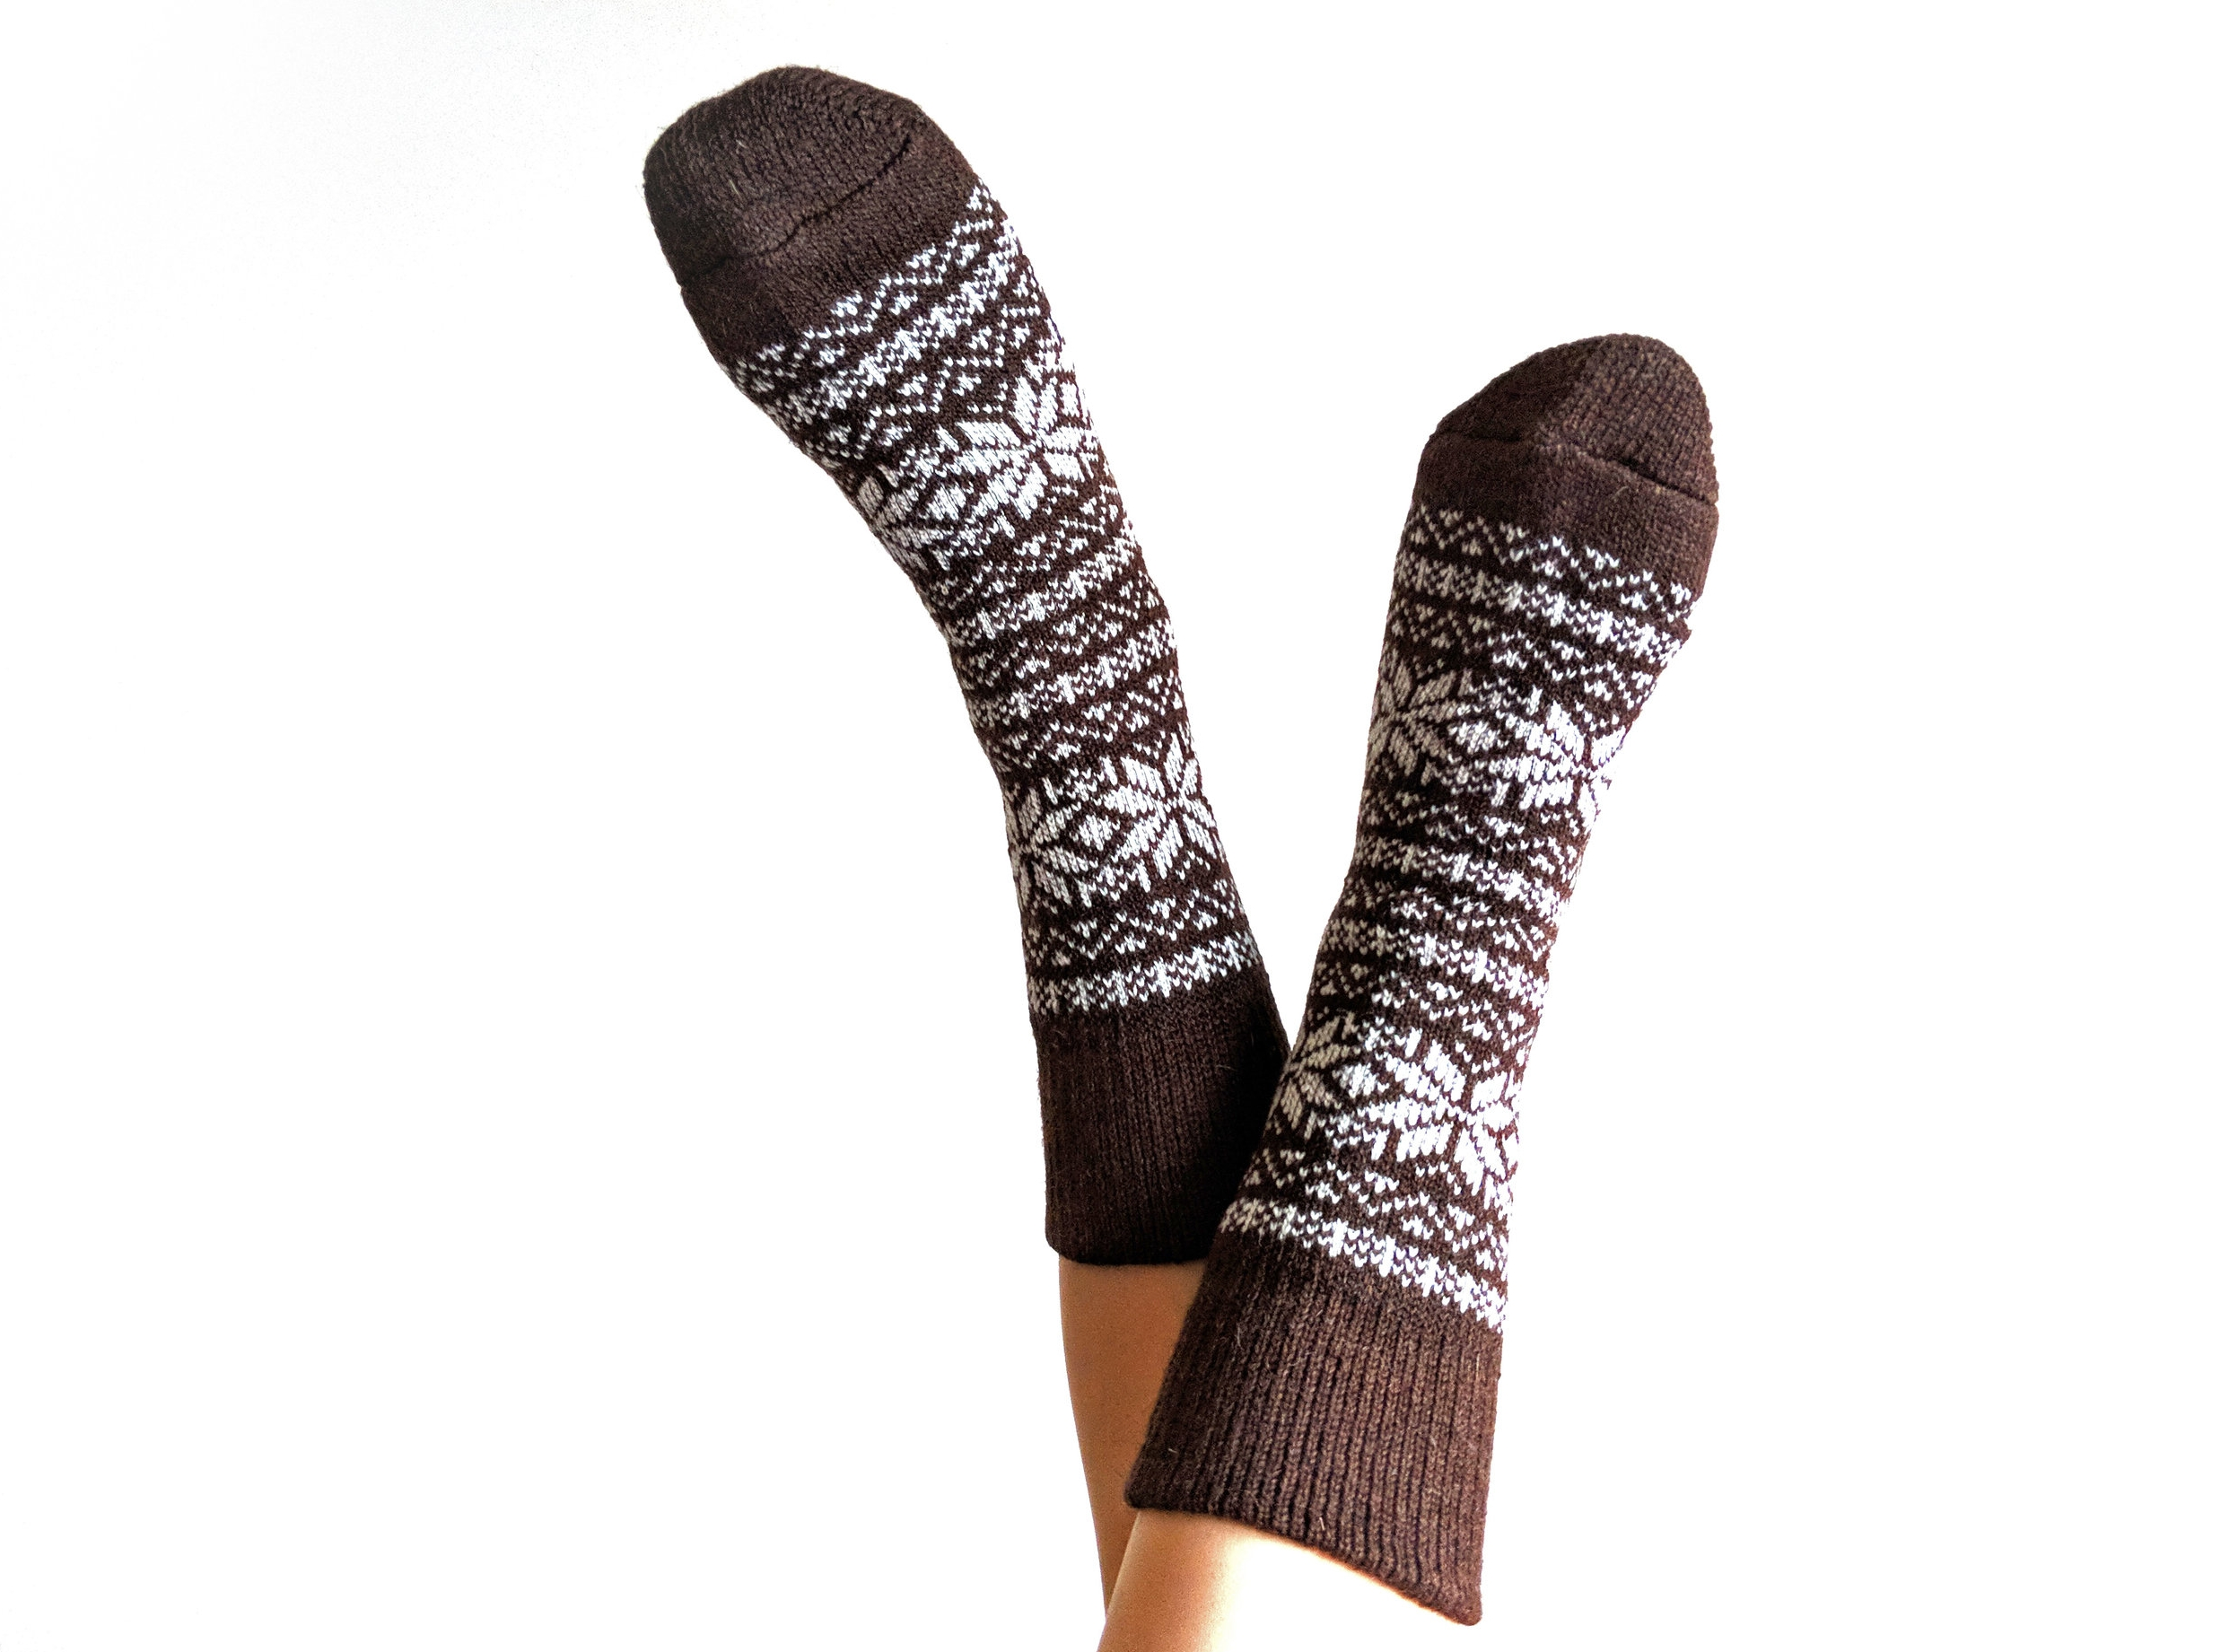 Camel Wool Socks with Scandinavian Ornament - Photo Credit: The Sock Review